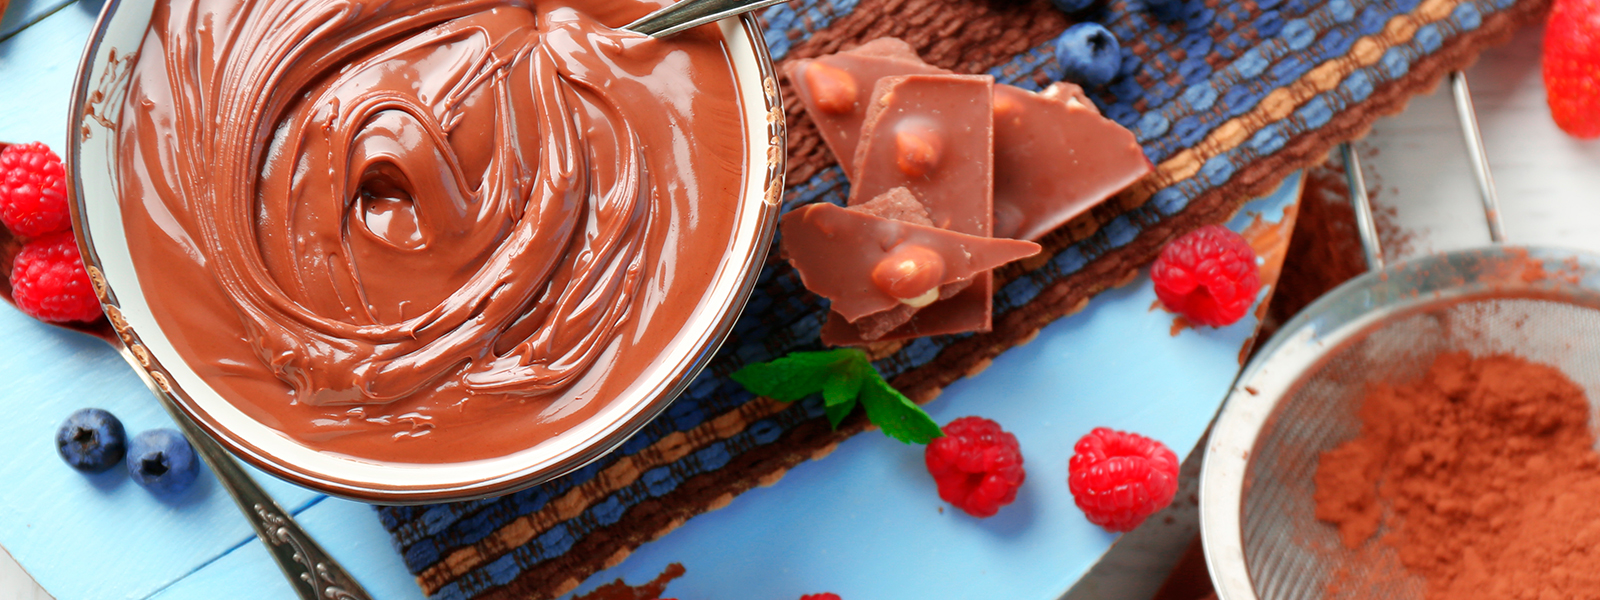 banner-carino-ingredients-toppings-fillings-chocolate-inclusions-syrup-sauce